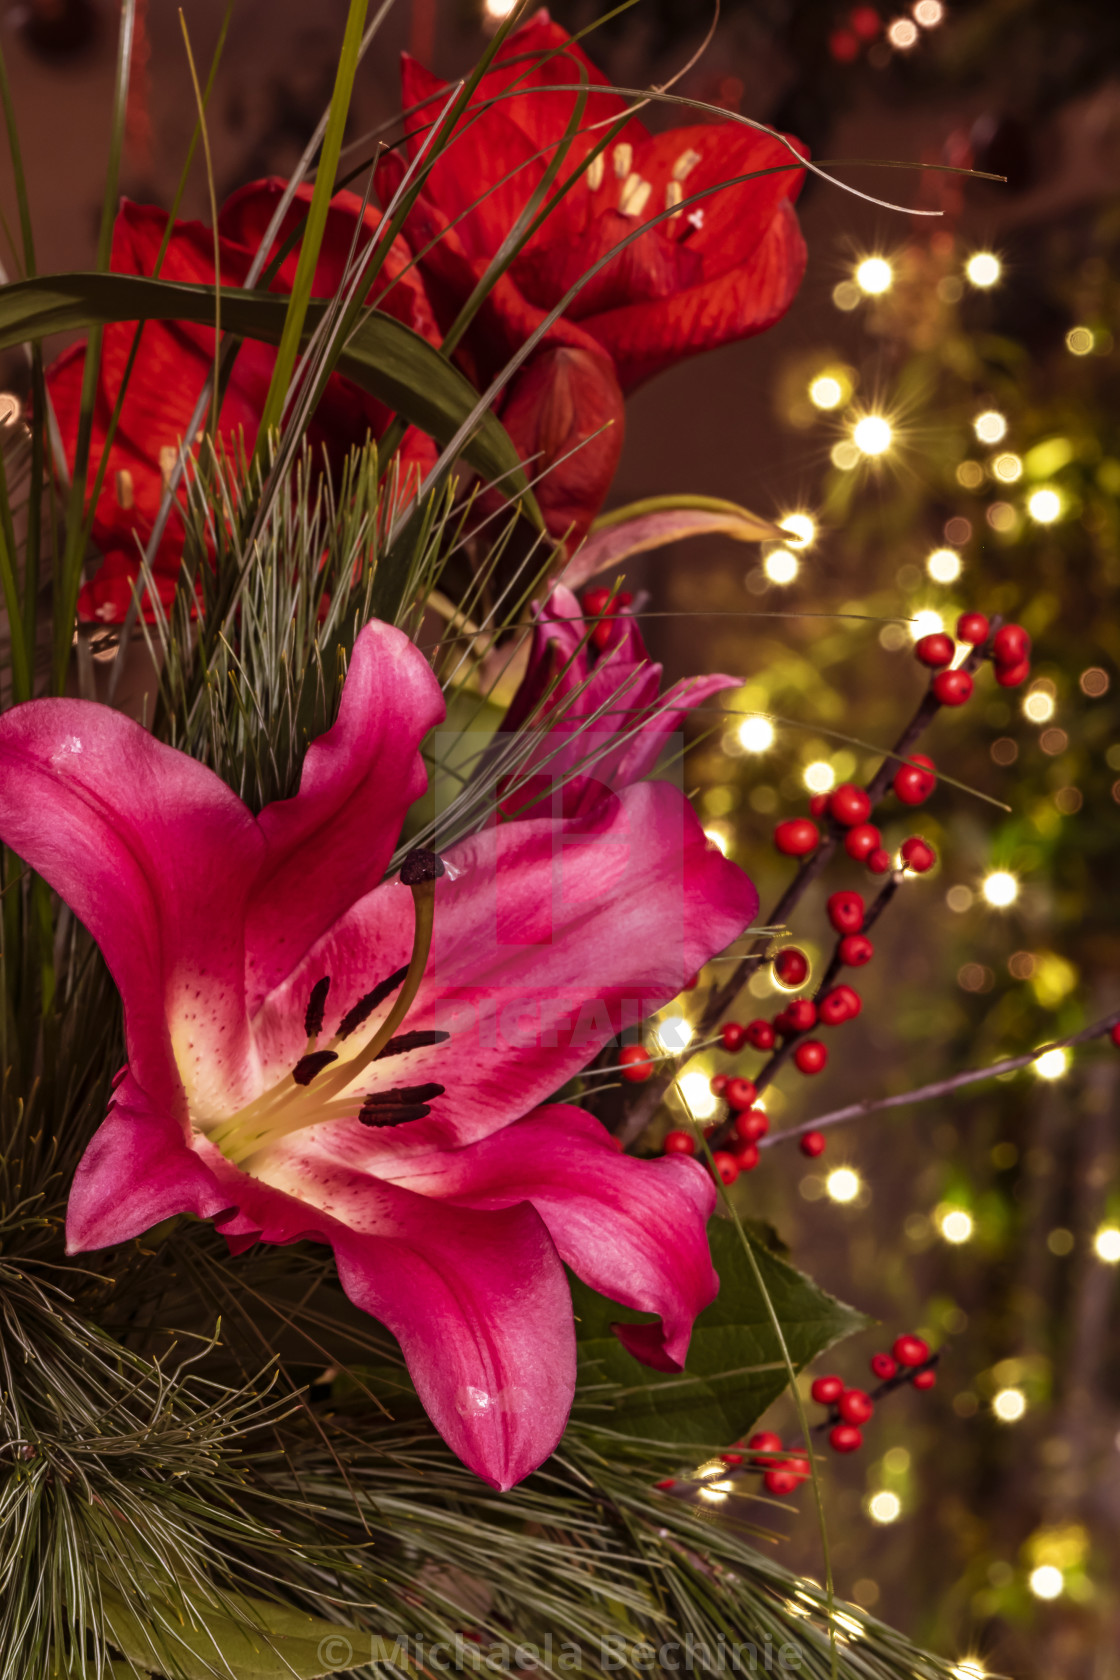 Closeup image of a bouquet of pink lilies (Lilium), branches